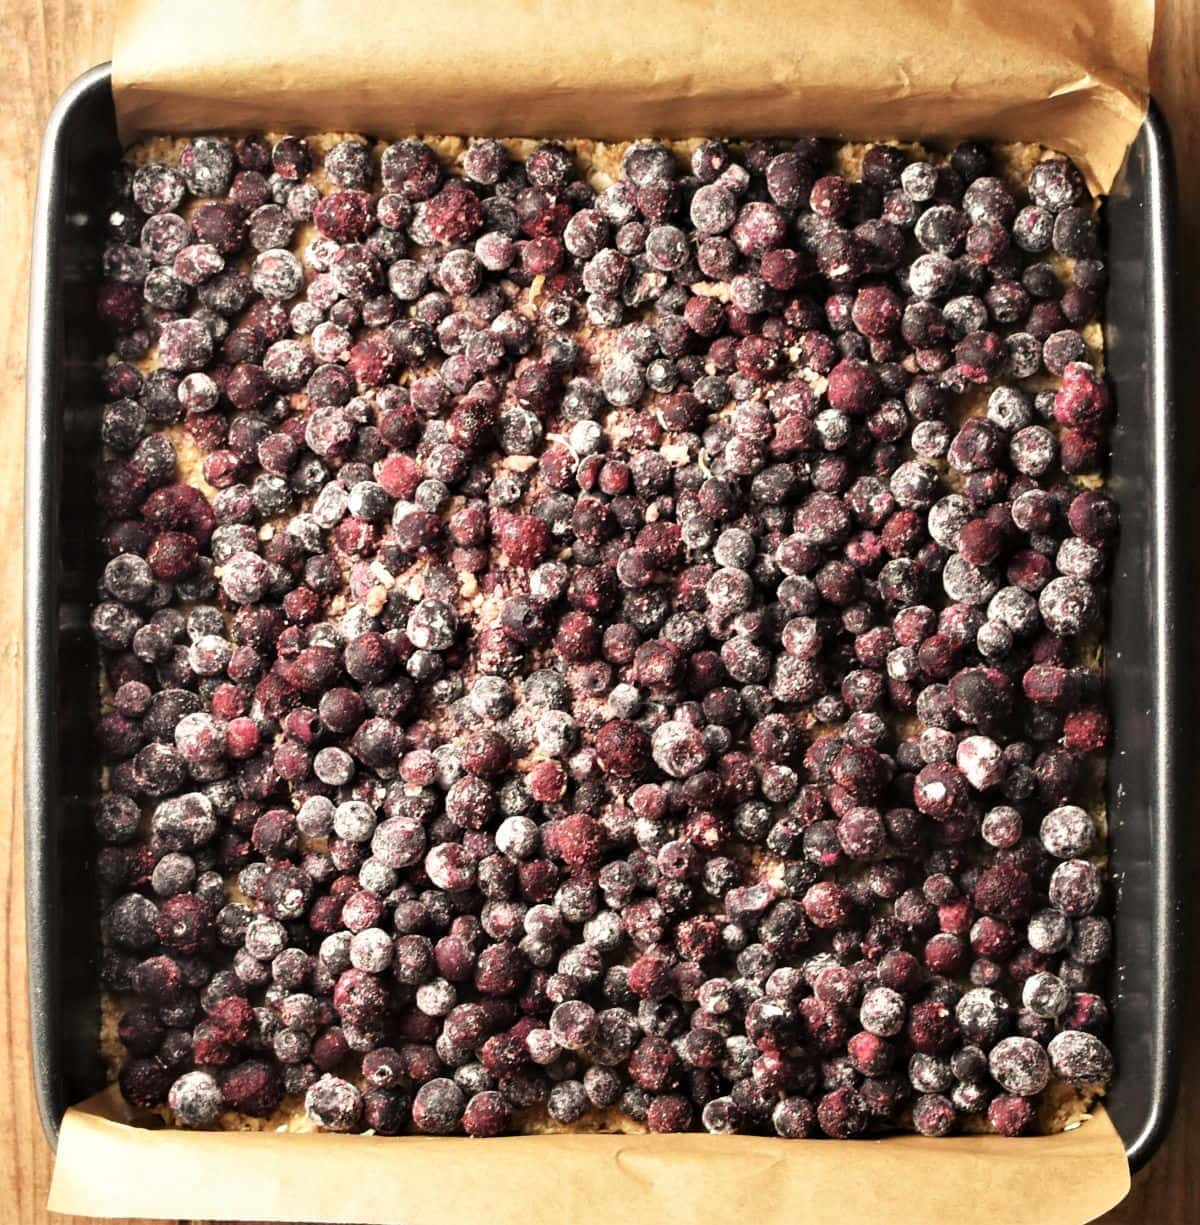 Blueberries in square pan.